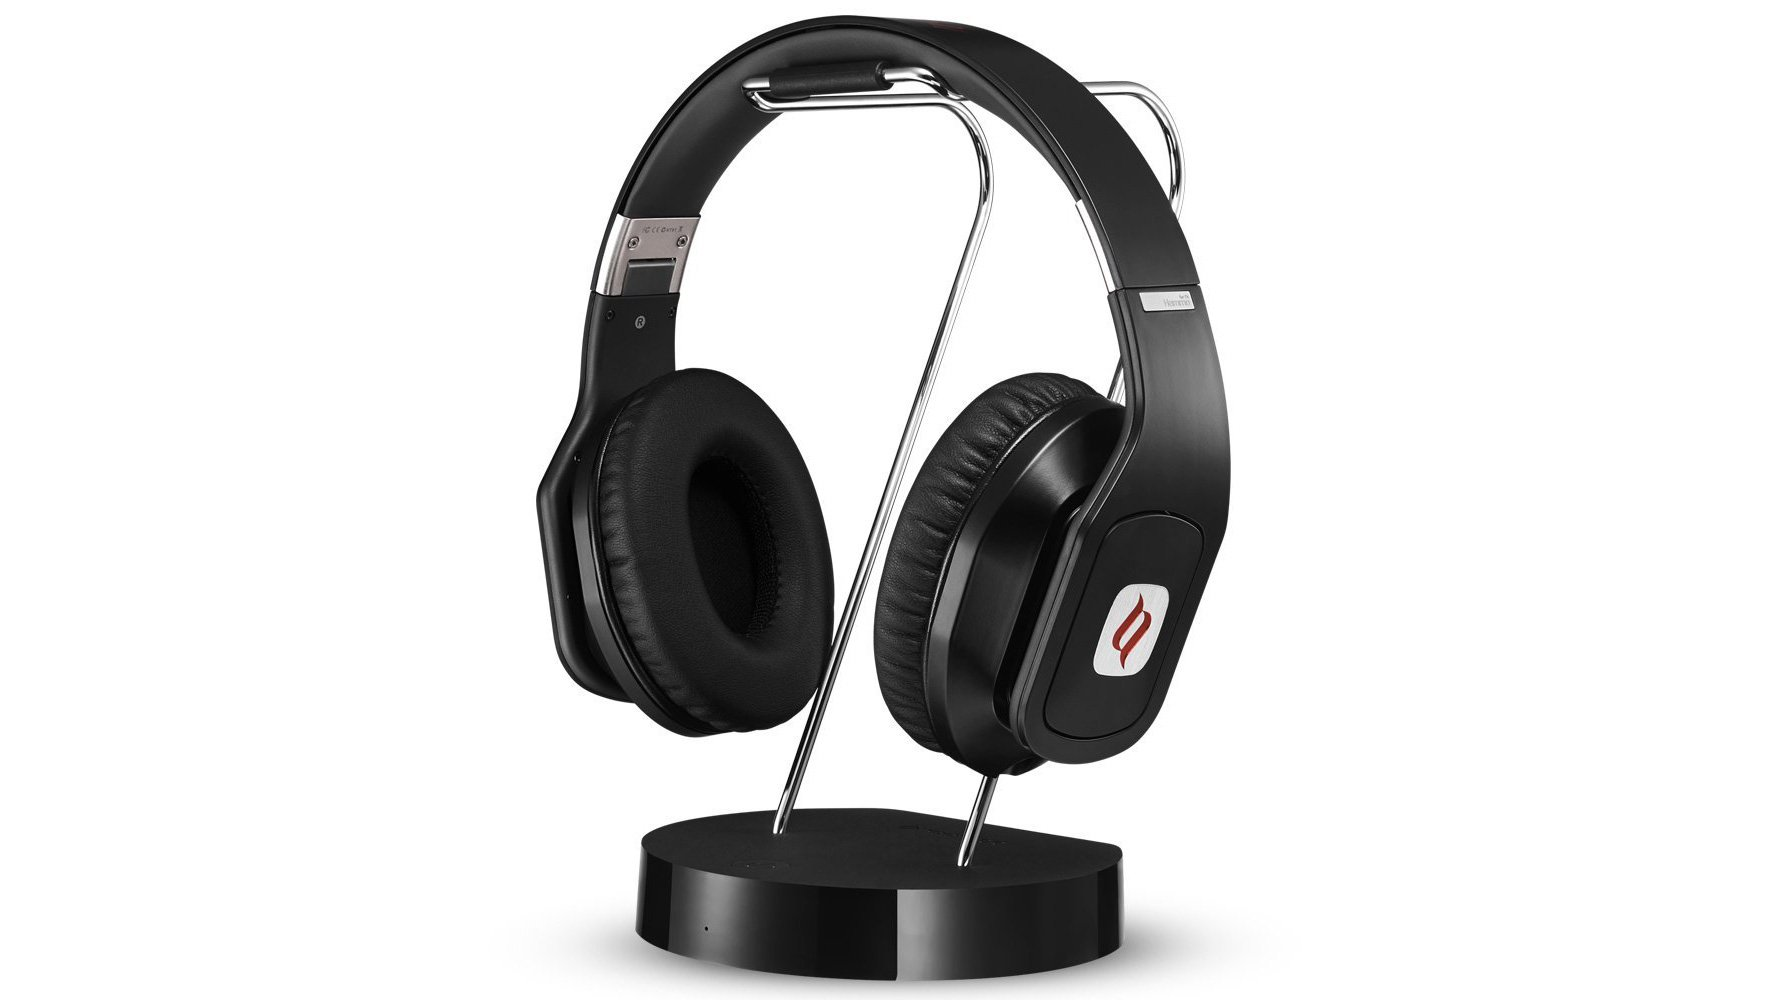 f7e644032a4 The Hammo TV is an impressive set of wireless headphones that connects via  Bluetooth to your smartphone or via its wireless docking station, which can  then ...